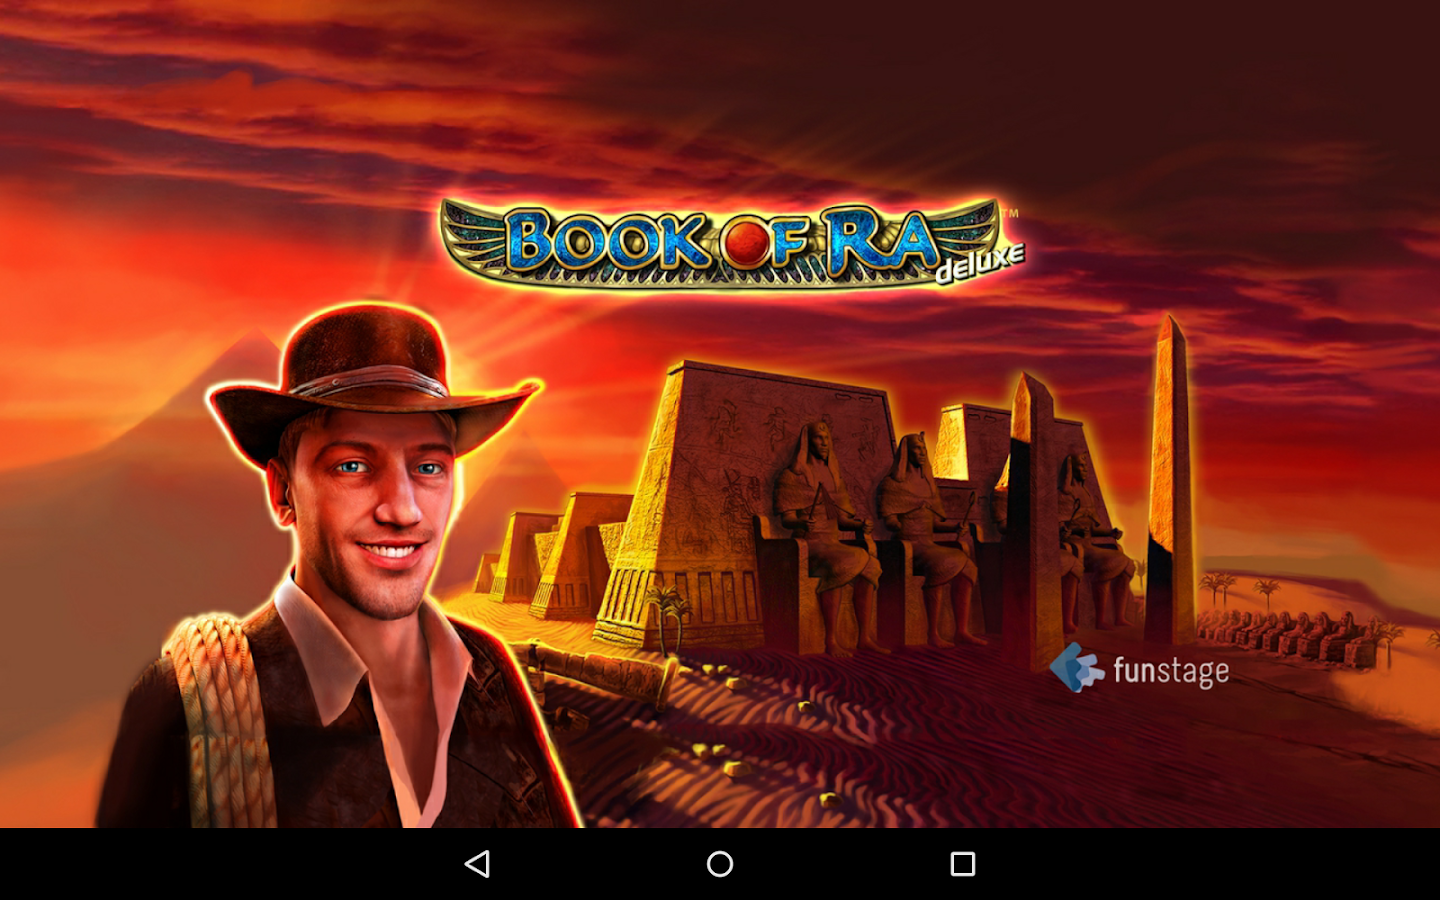 books of ra app